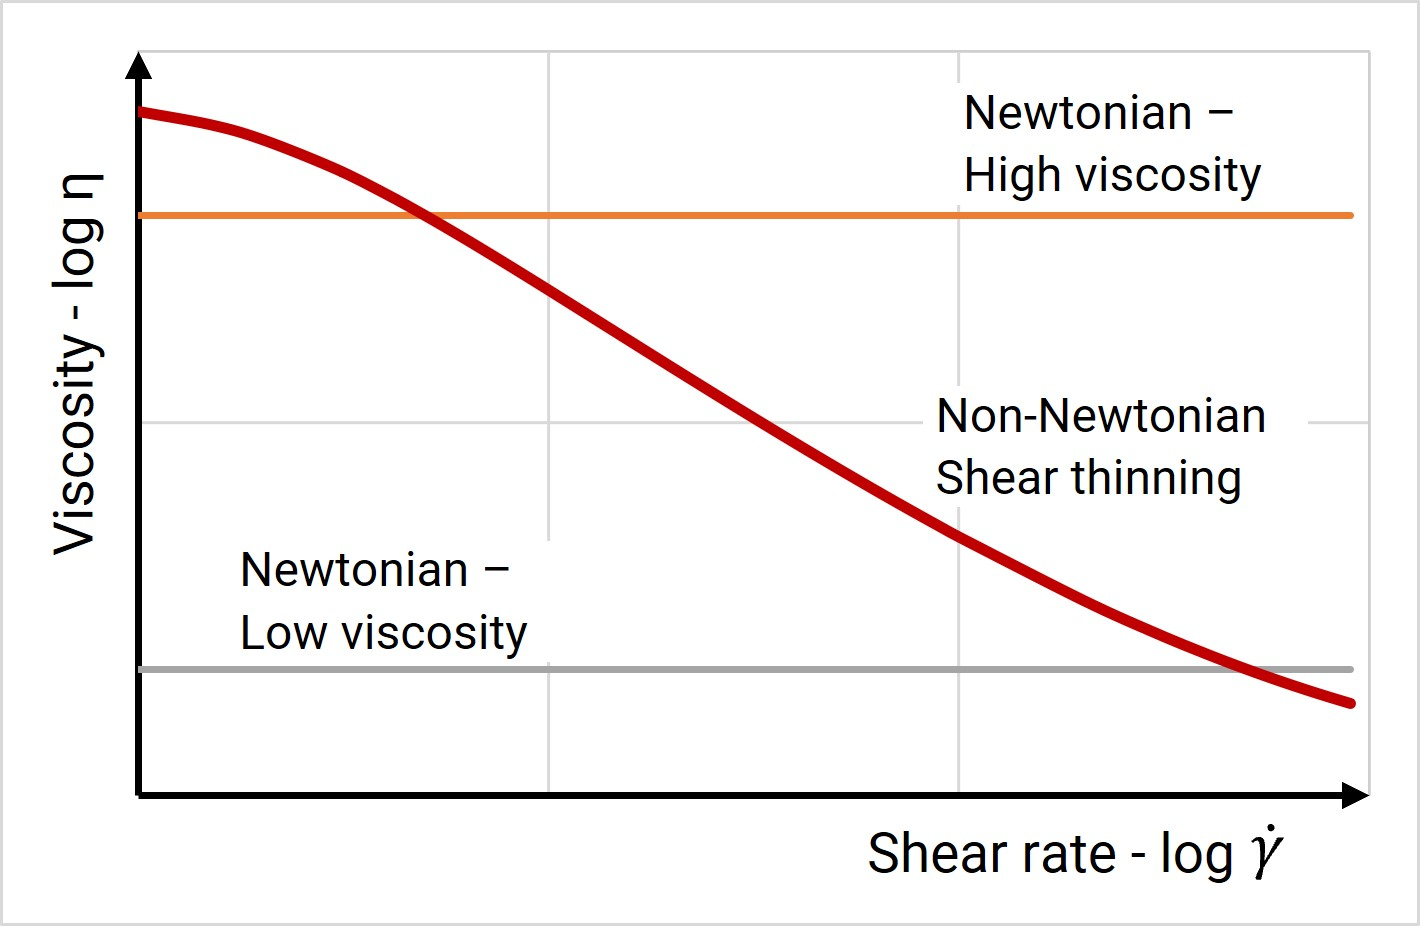 Figure 2. Newtonian liquids has the same viscosity at all shear rates. Non-newtonian do not - for instance a shear thinning liquid has lower viscosity at higher shear rate.